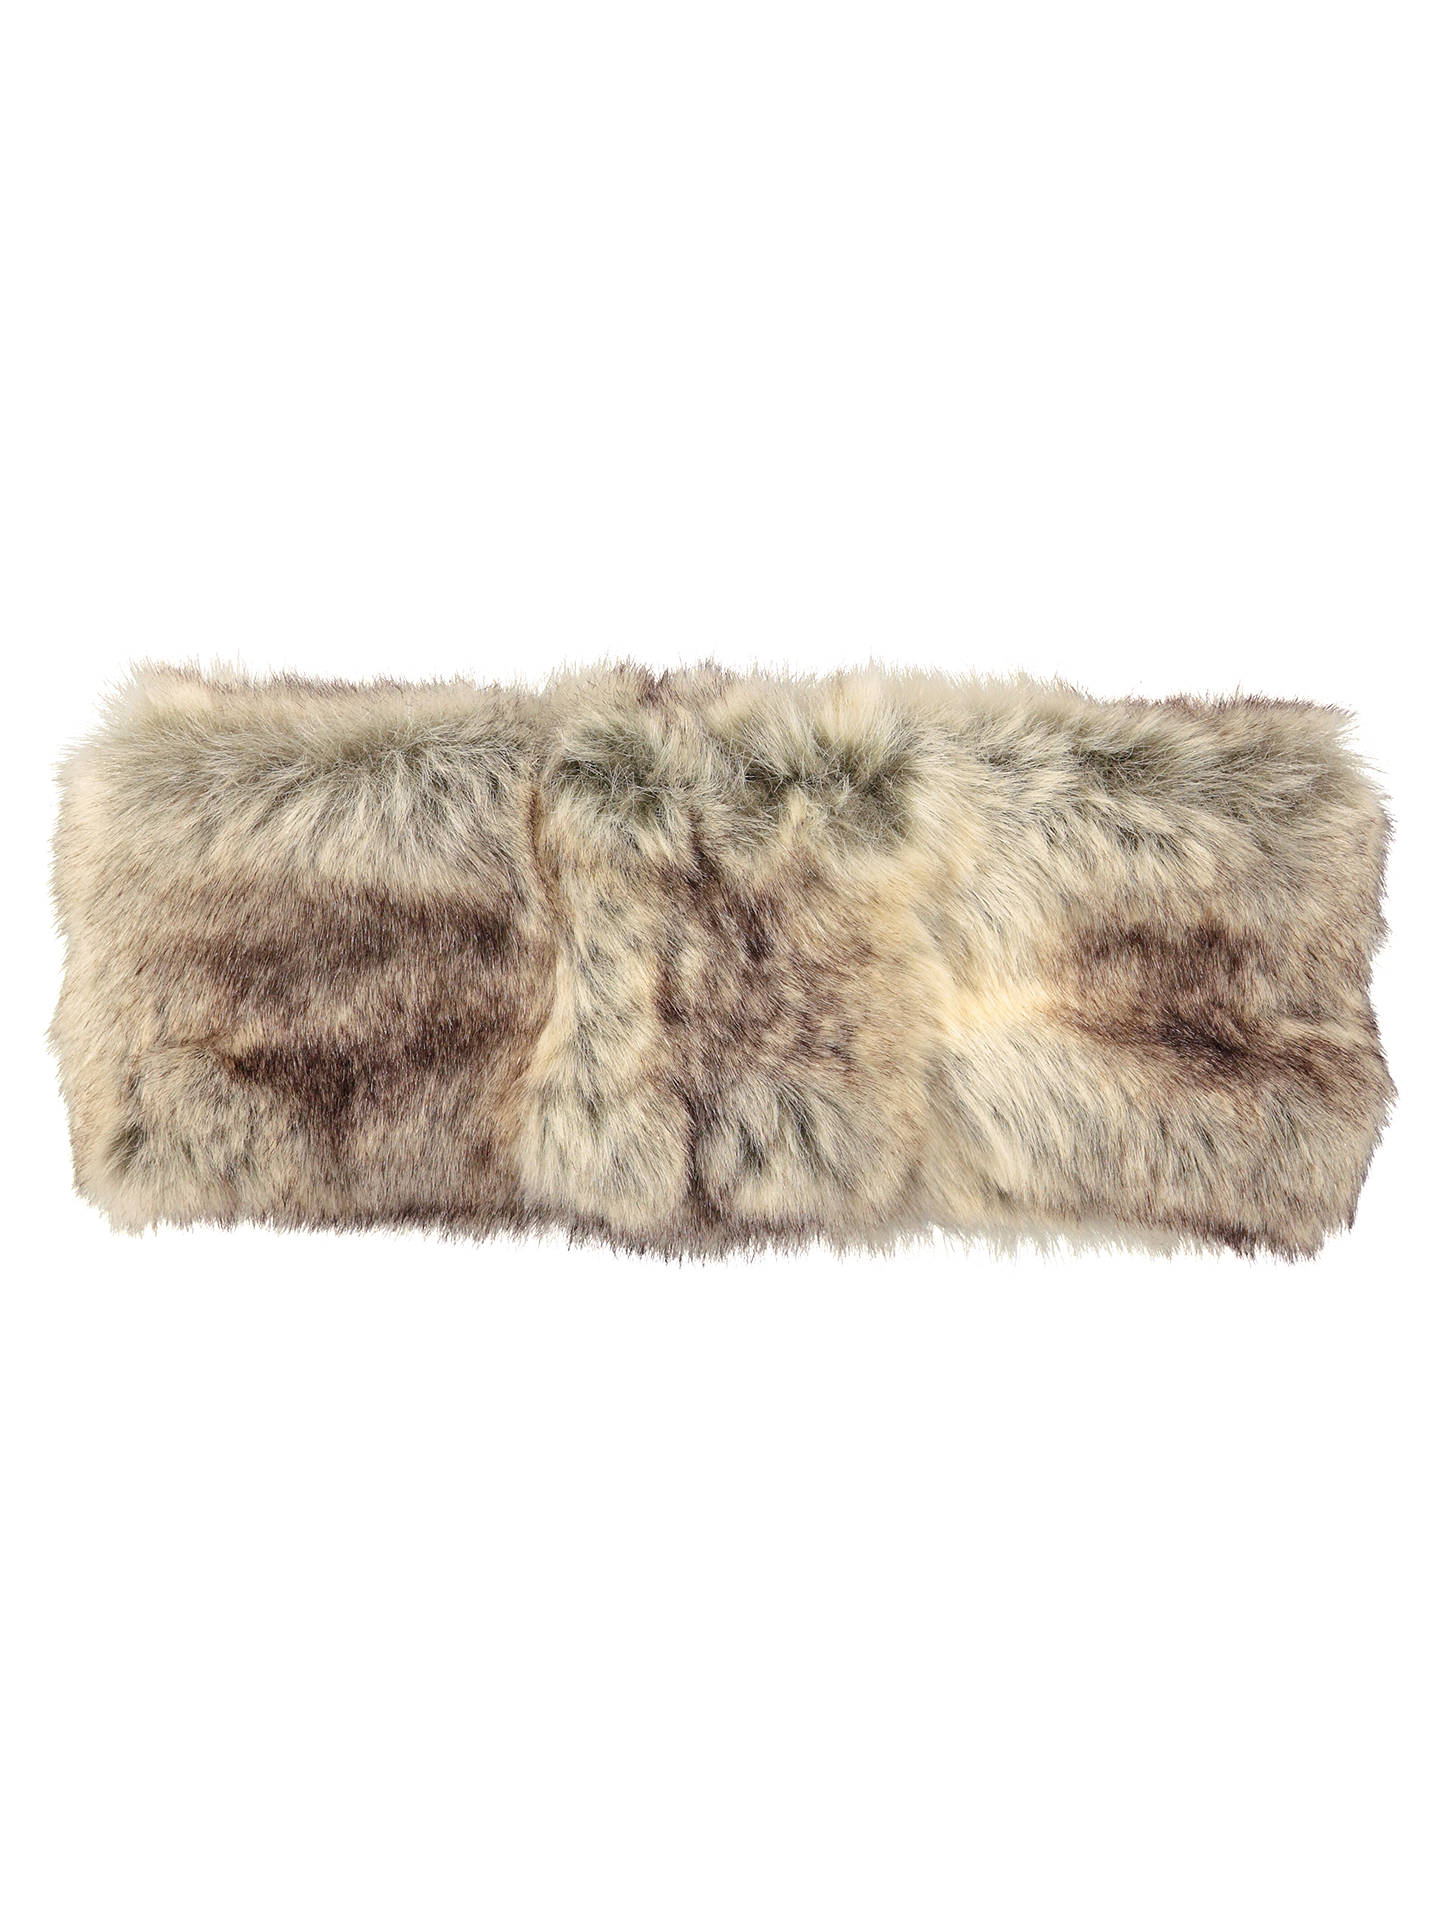 BuyBarts Faux Fur Headband, One Size, Brown Online at johnlewis.com